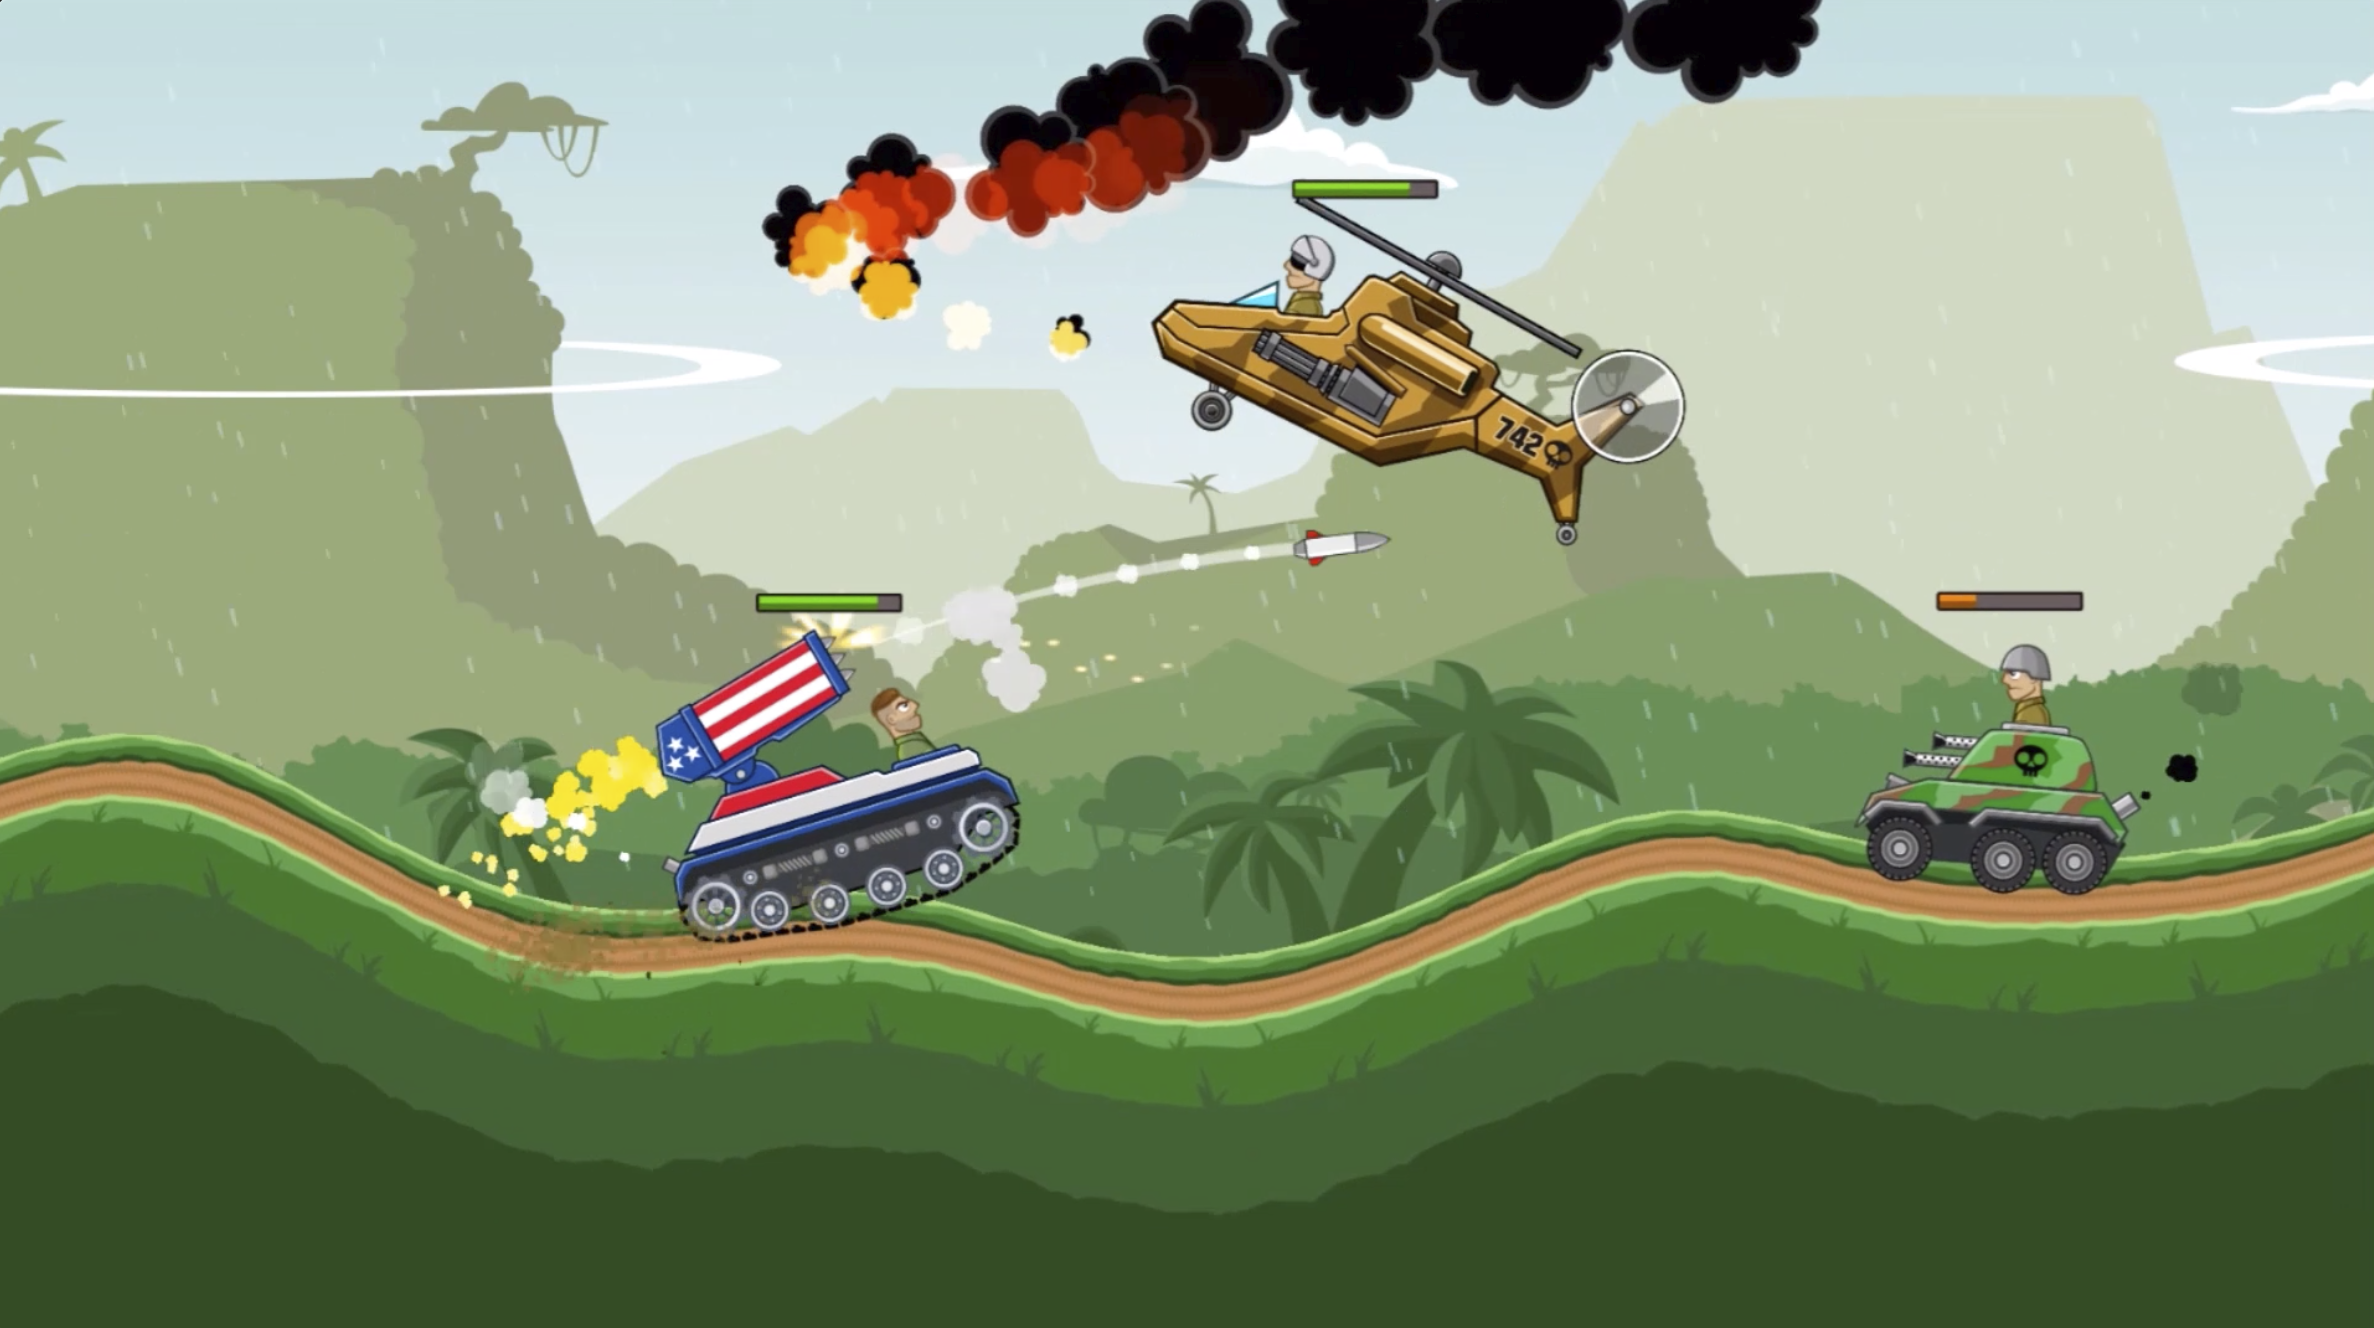 A screencapture of the Fingersofts game Hill Climb